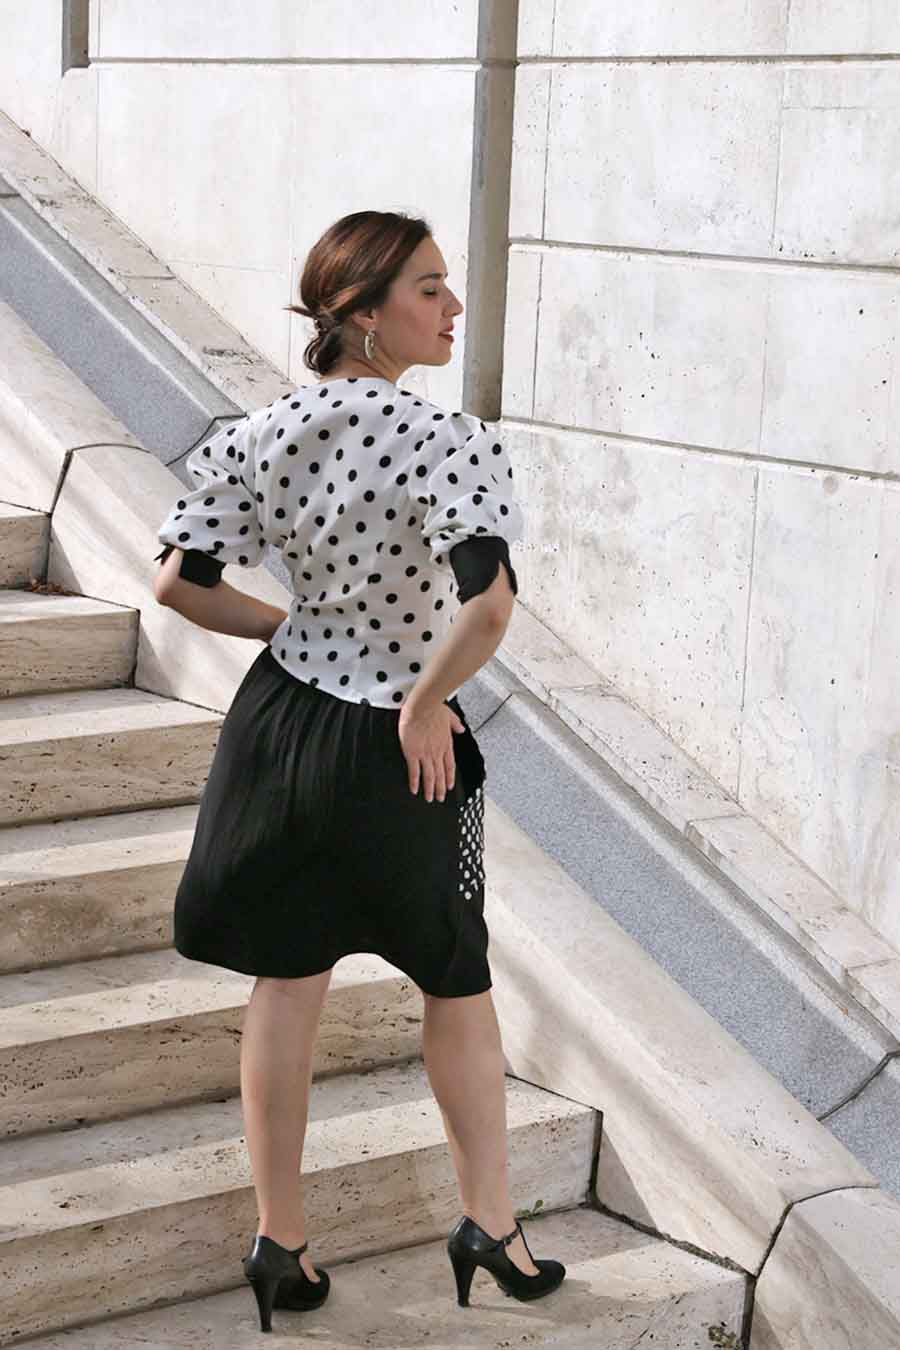 Black A-line skirt with polka dot printed pockets from back